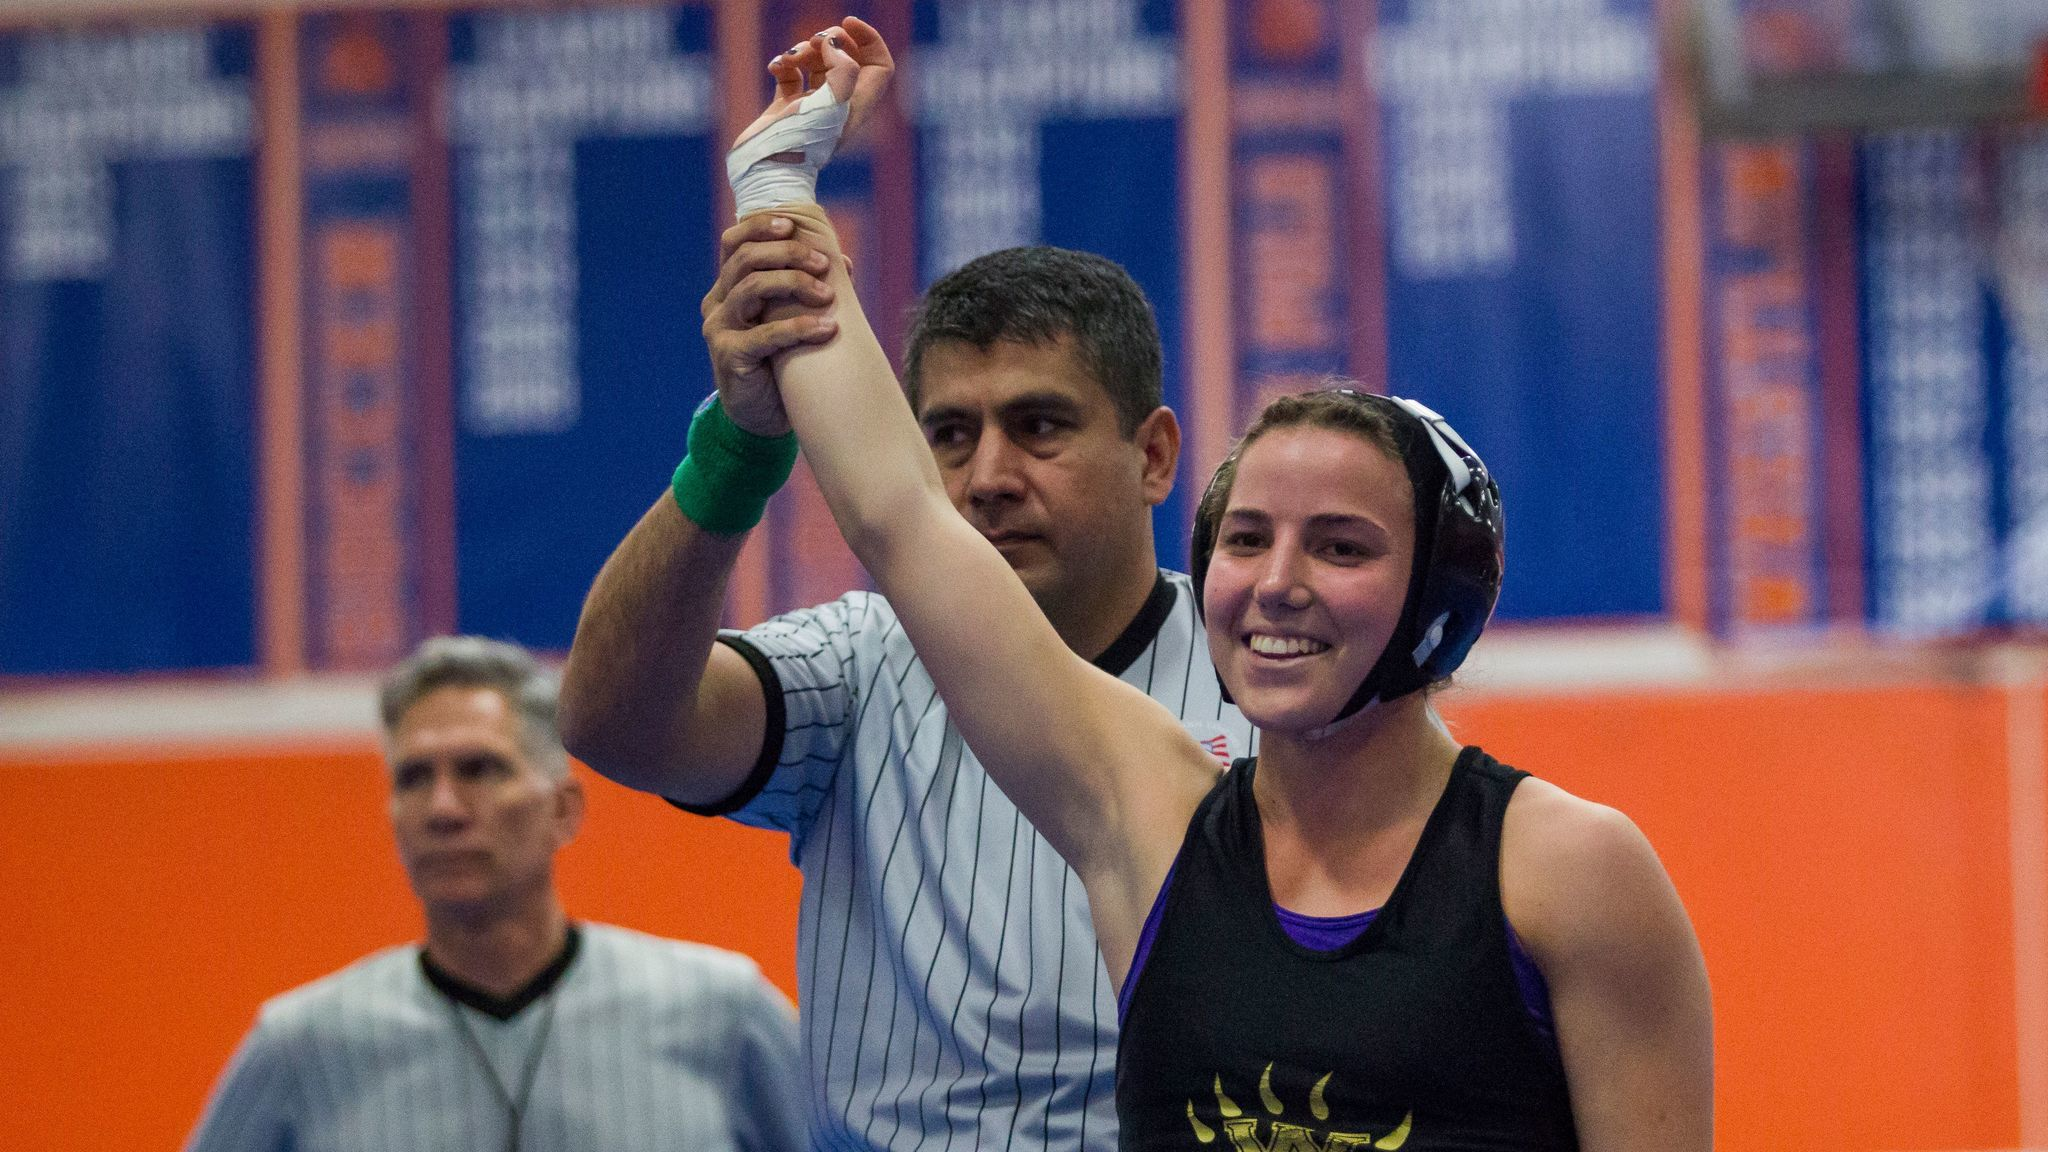 SAN DIEGO, February 11th, 2017 | 2017 CIF San Diego Section girls wrestling championships held at Clairemont  High School. Westview's Claire Bjork smiles after pinning San Diego's Esmerelda Ibarra for a fast 18 second fall in the 139lb division. Chadd Cady for The San Diego Union-Tribune